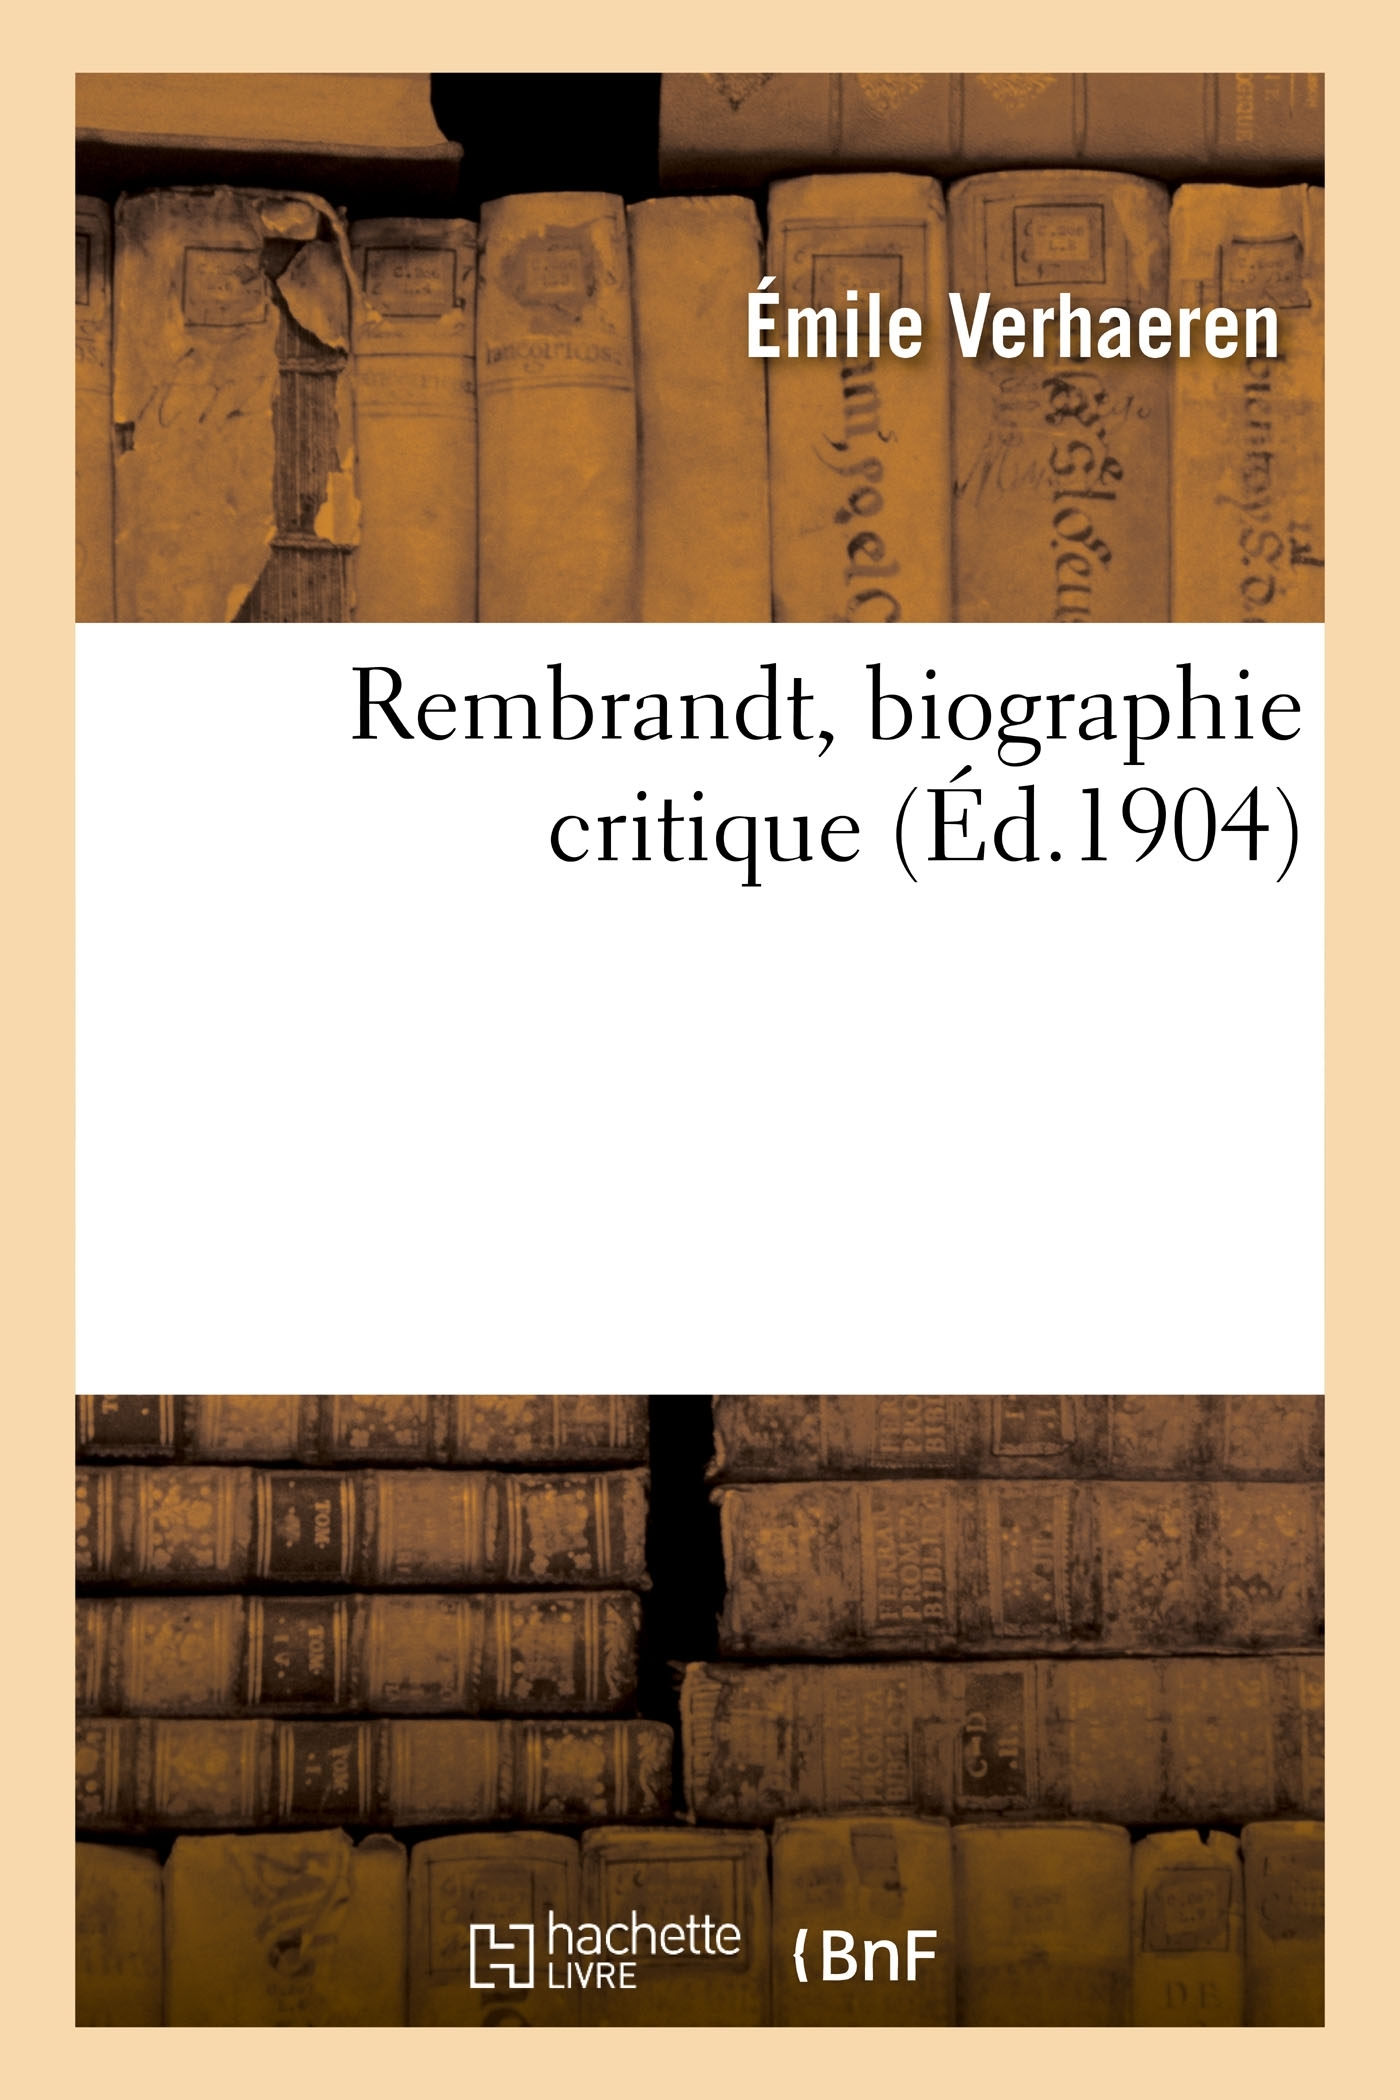 REMBRANDT, BIOGRAPHIE CRITIQUE